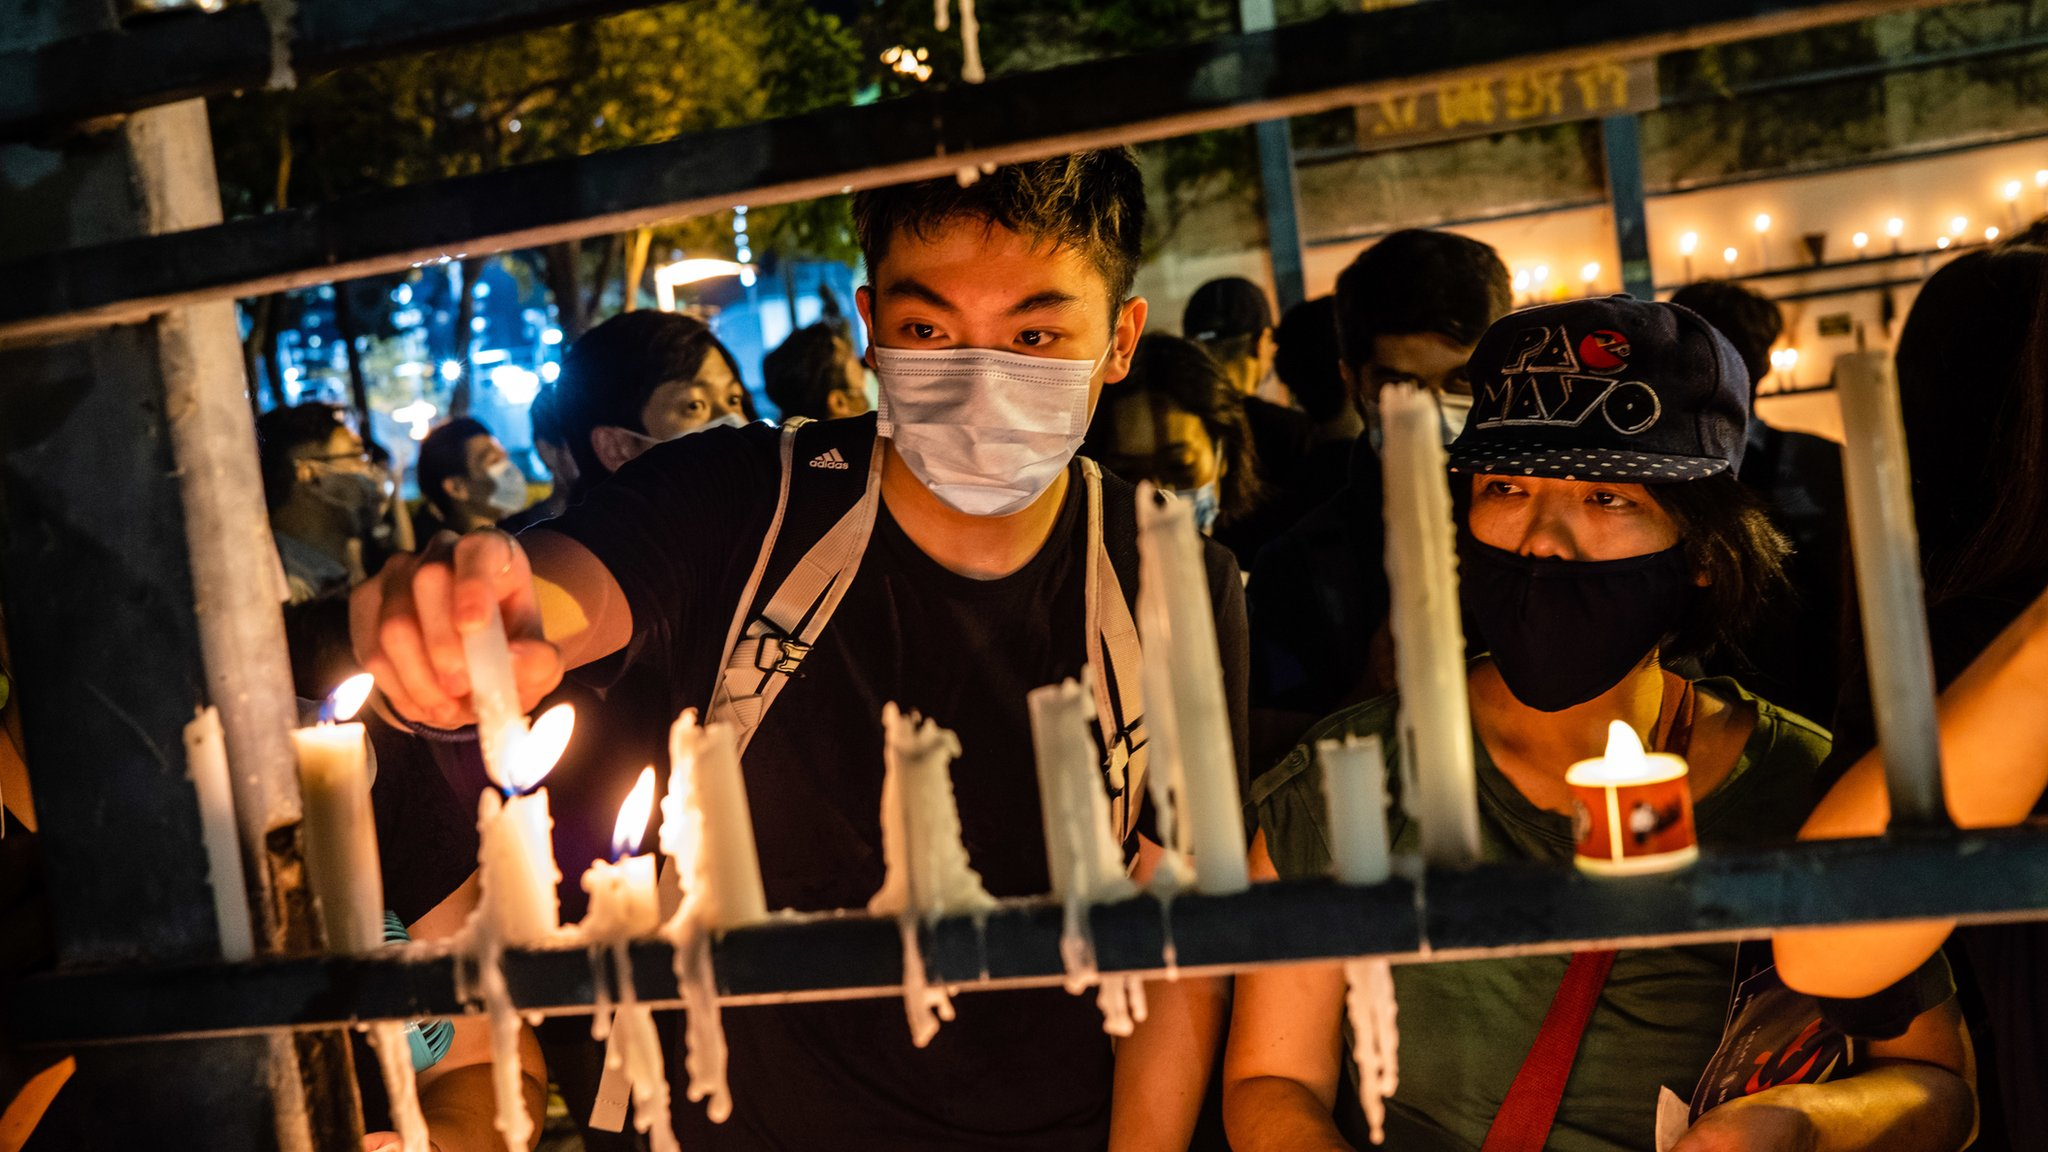 Protesters light candles during the 31st anniversary of the Tiananmen Massacre. Thousands gathered for the annual memorial vigil in Victoria Park to mark the 1989 Tiananmen Square Massacre despite a police ban citing coronavirus social distancing restrictions.